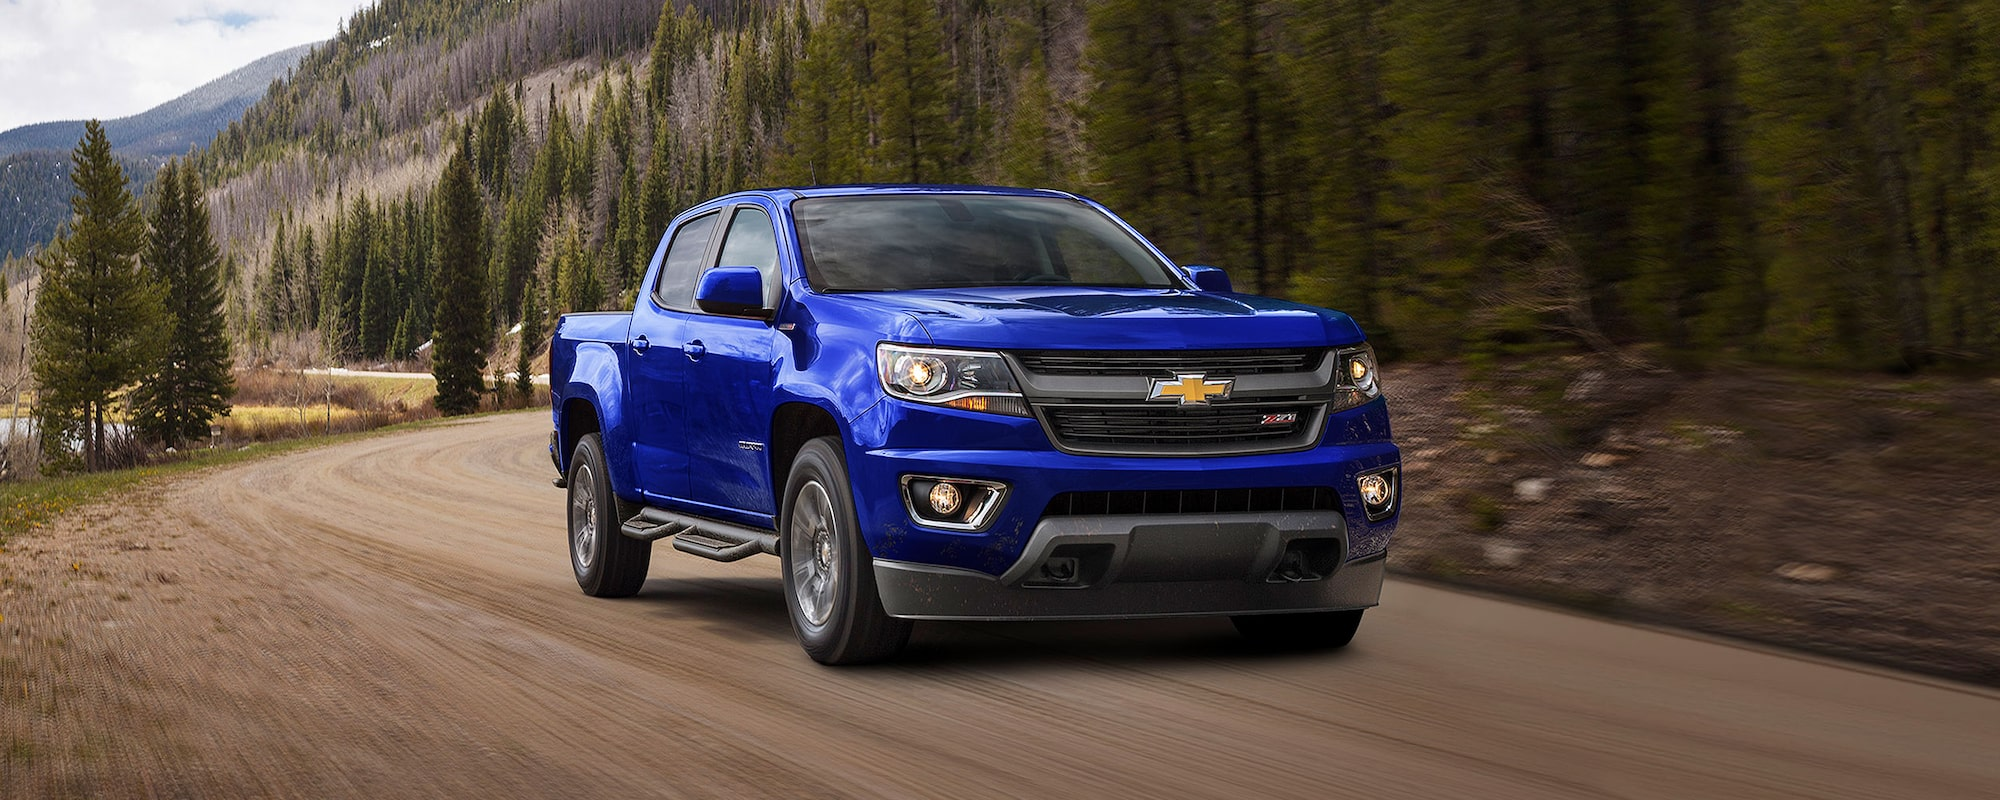 medium resolution of with its available duramax 2 8l turbo diesel 4 cylinder engine the award winning colorado offers best in class highway fuel economy with an epa estimated 30